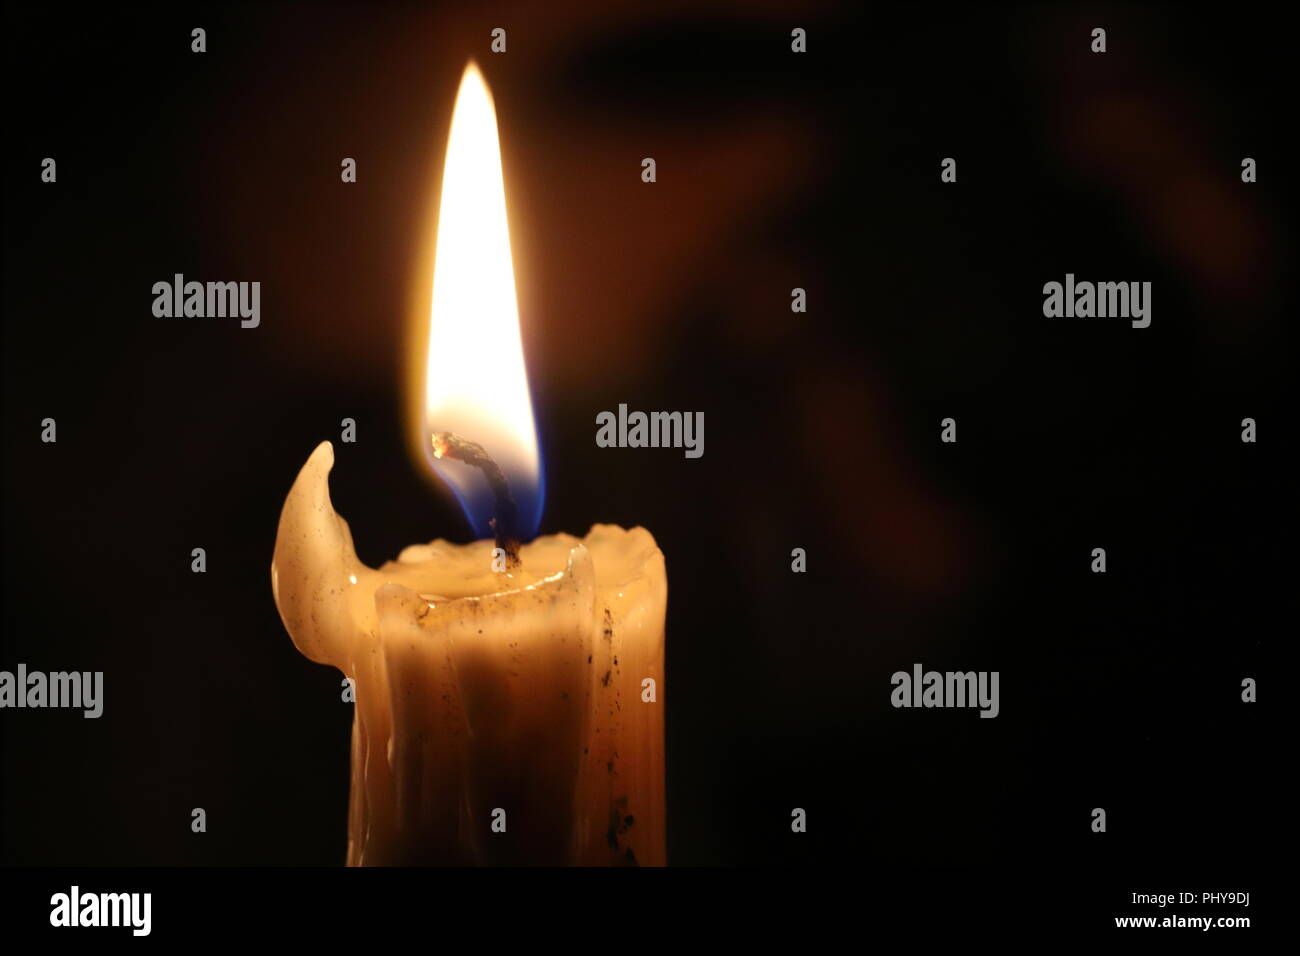 Symbol all saints day stock photos symbol all saints day stock close up of burning wax candle in the dark candle flame candlewick christmas m4hsunfo